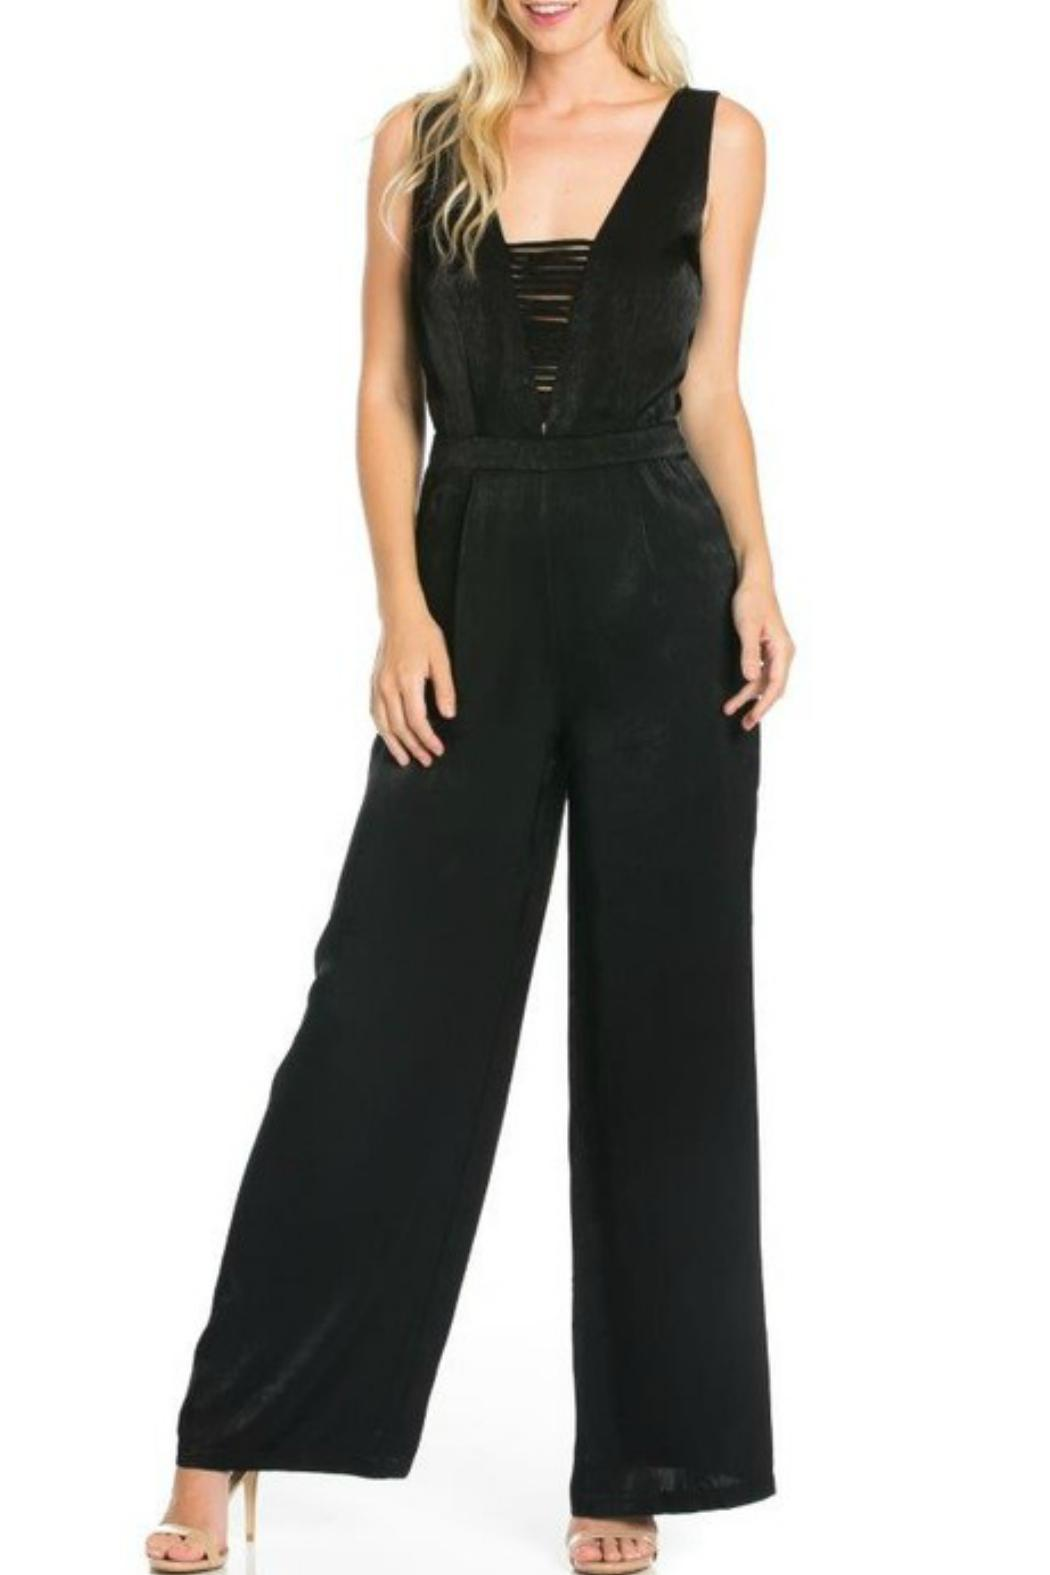 Hommage Simple Black Jumpsuit from Tampa by Imagine That — Shoptiques